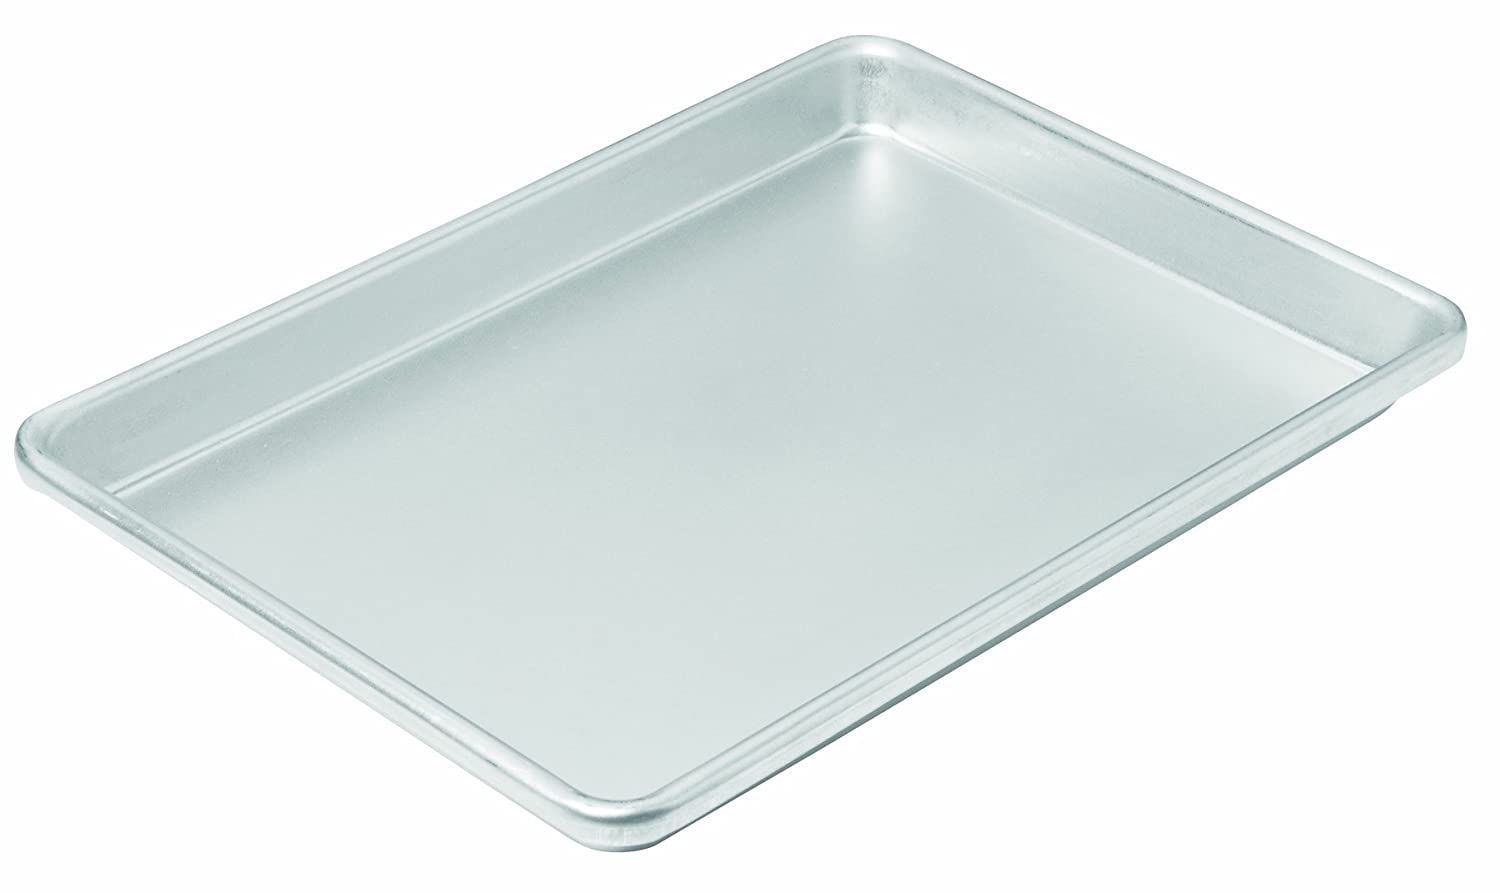 Chicago Metallic 49129 12-1/4 by 8-3/4-Inch Commercial II Traditional Uncoated Small Jelly Roll Pan